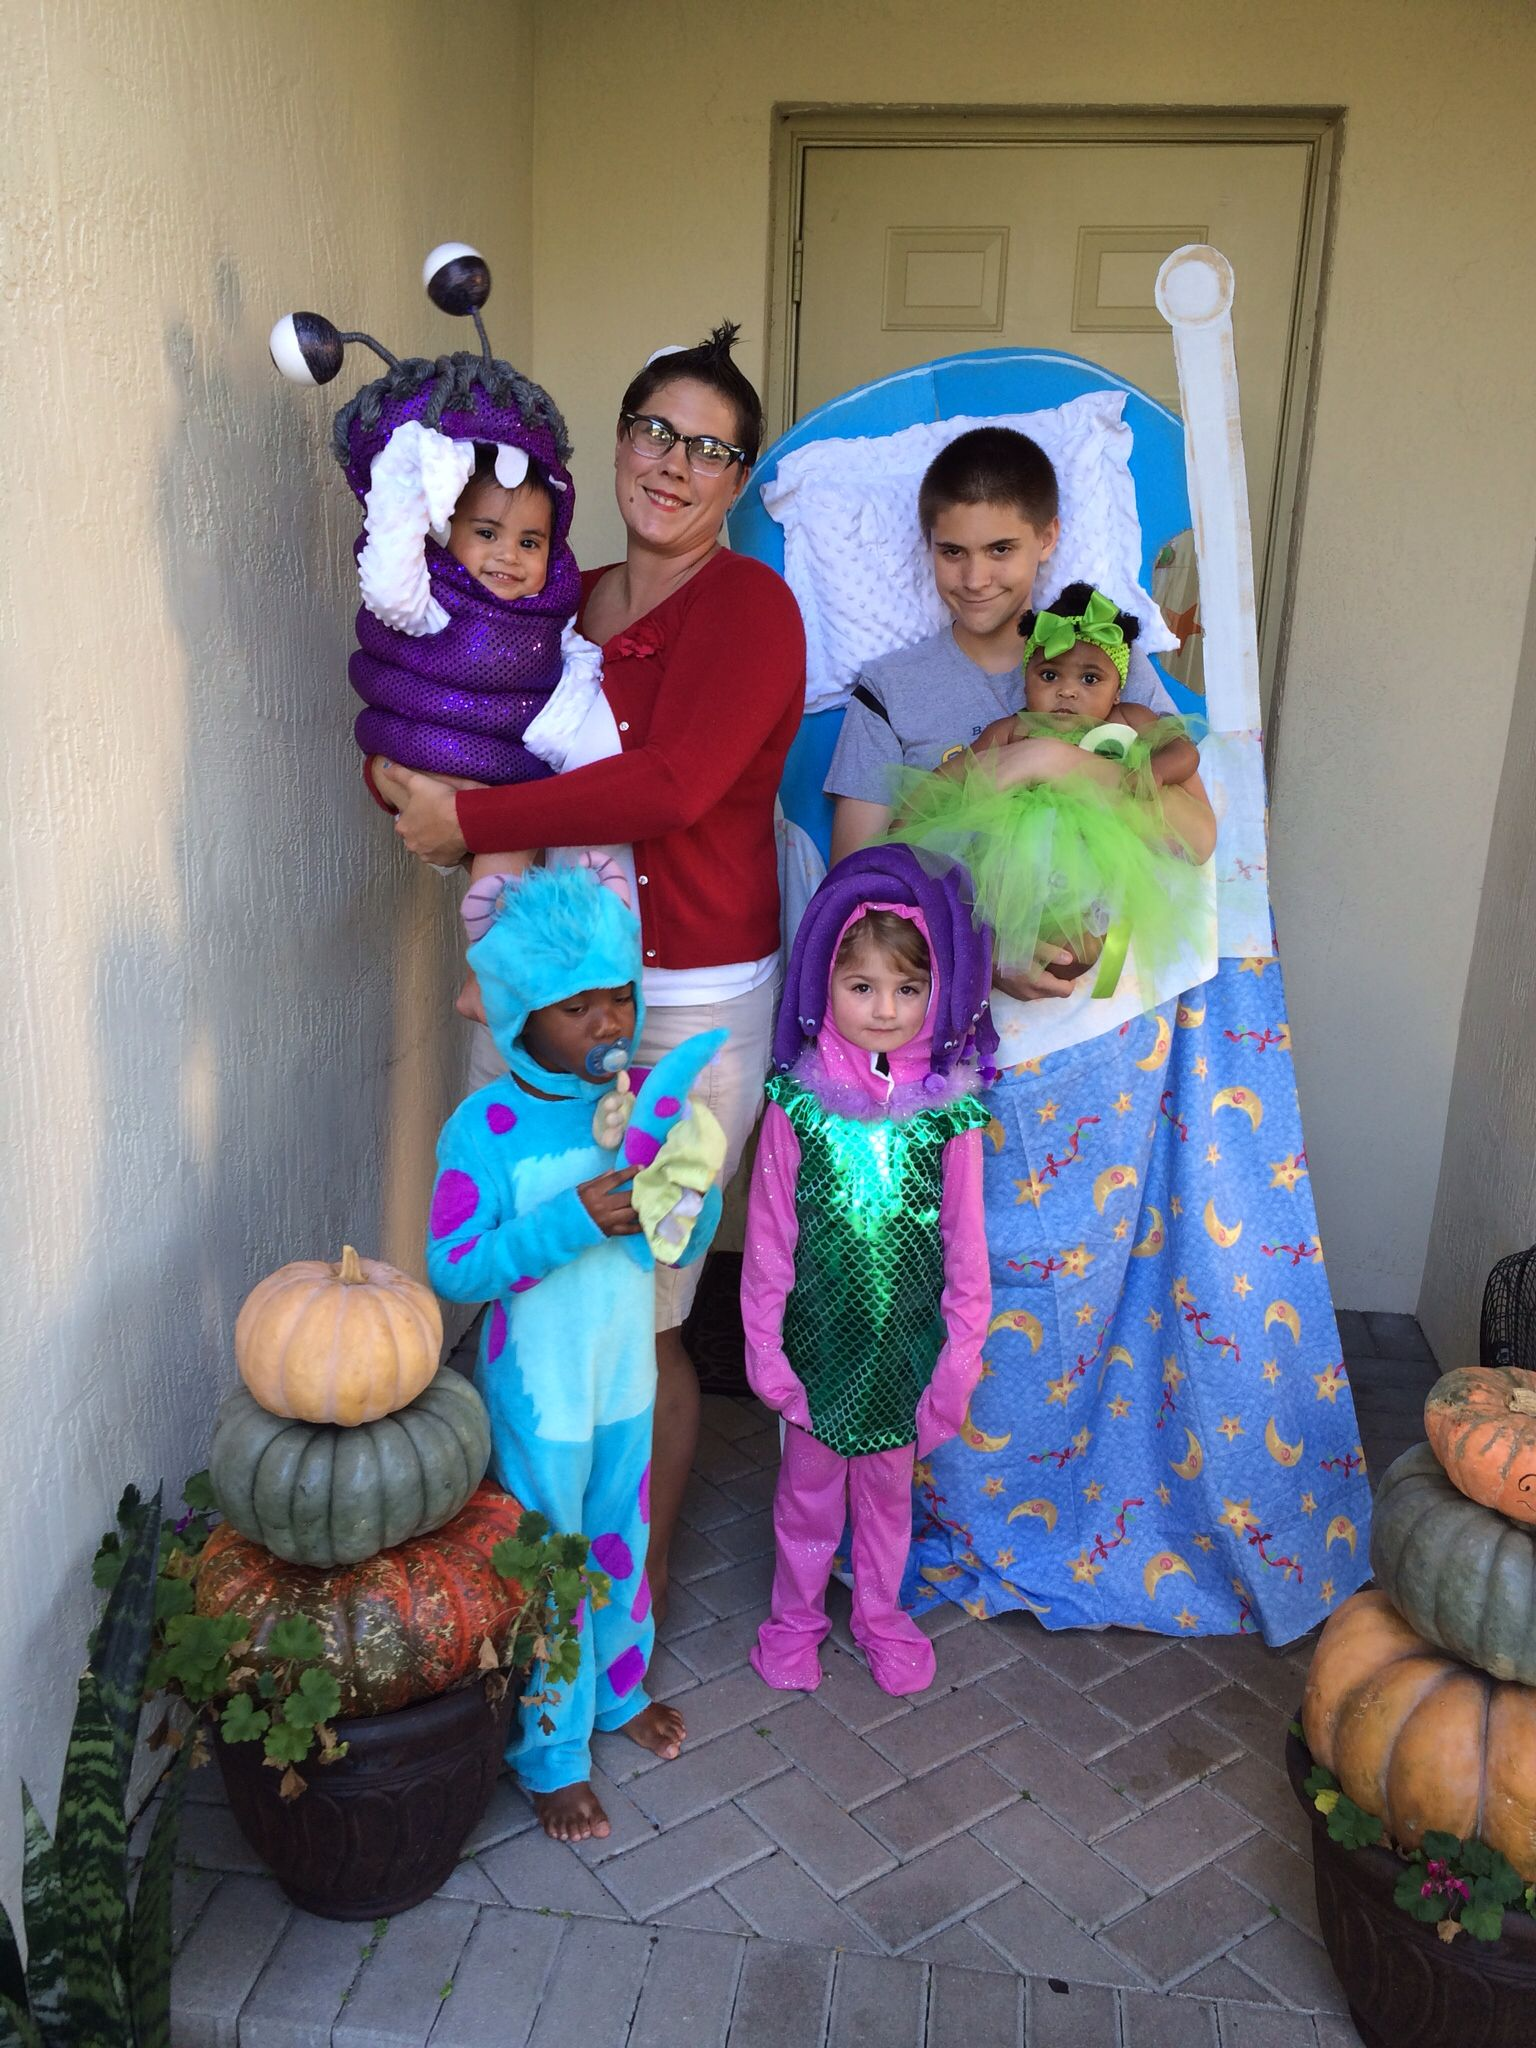 monsters inc. halloween costumes. sully, boo, celia, roz, mike, boy